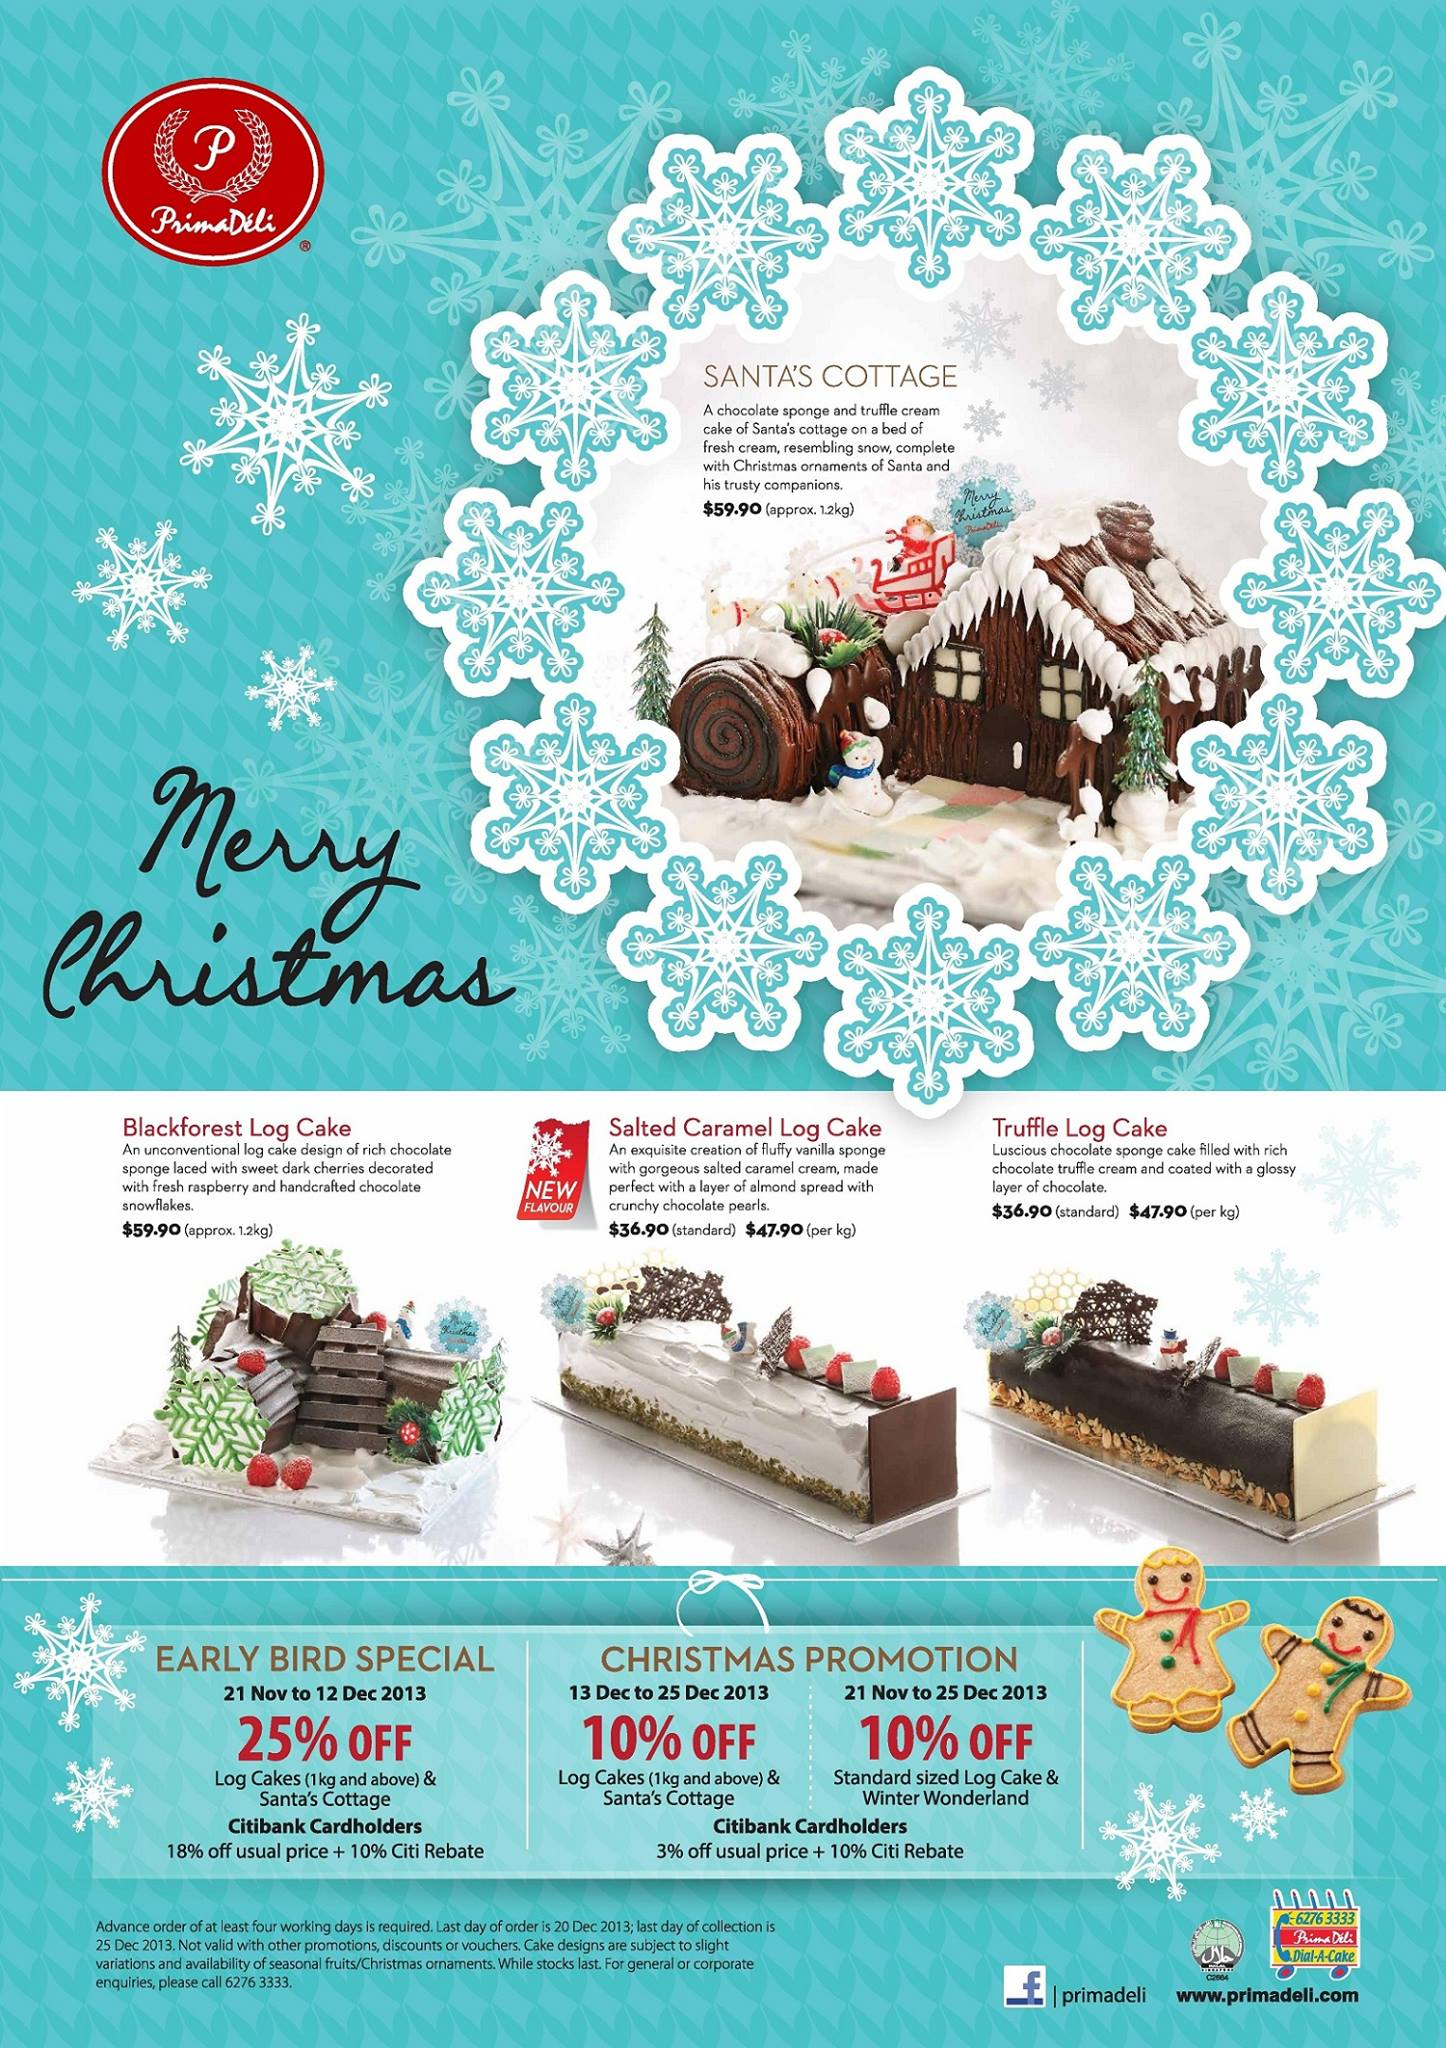 Prima Deli Christmas Log Cake Promotion 2013: 25% Discounts For Early Birds